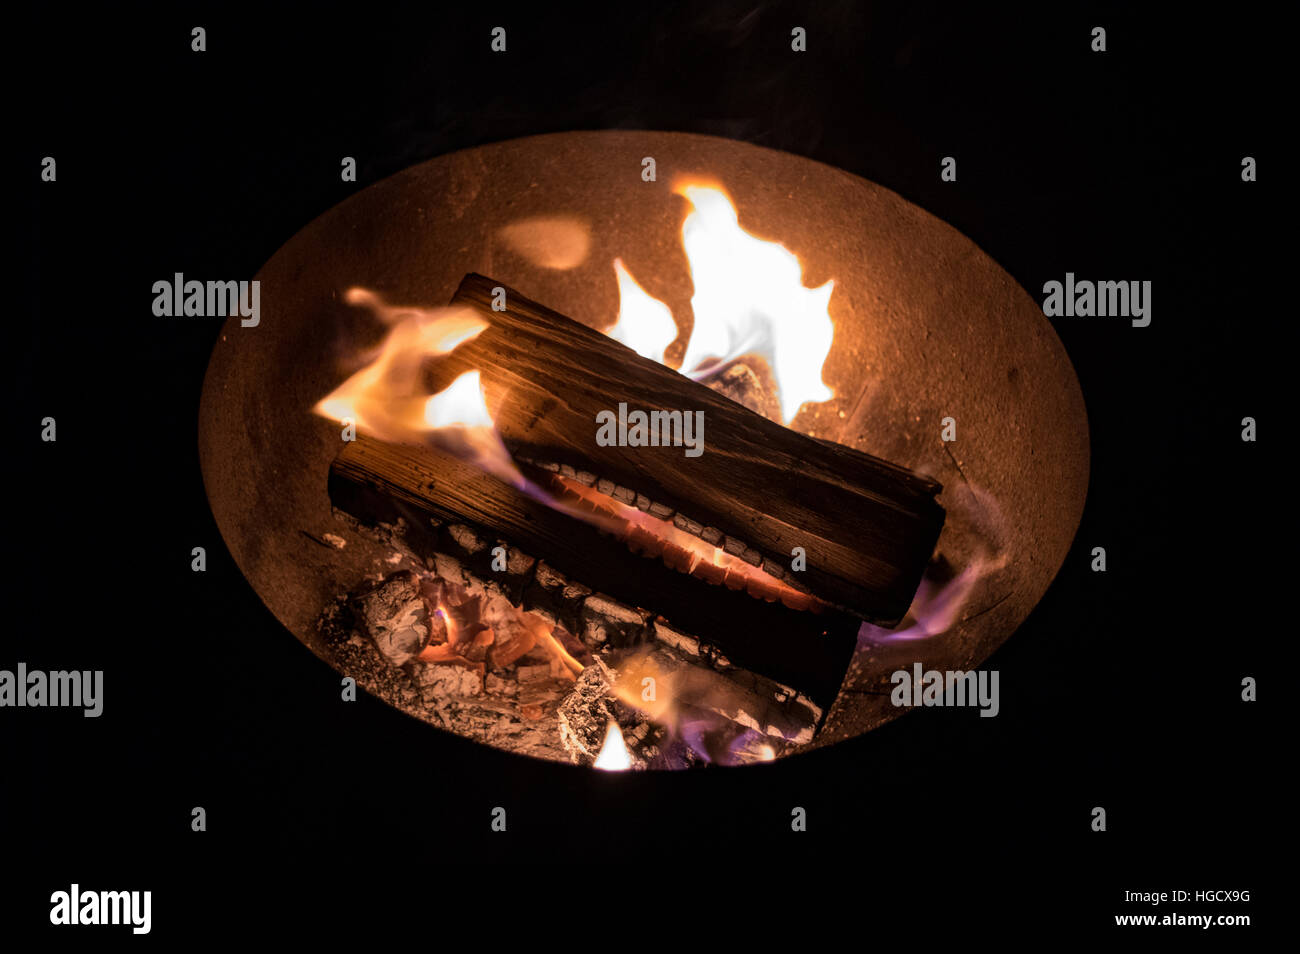 Wood fire burning in bowl, - Stock Image